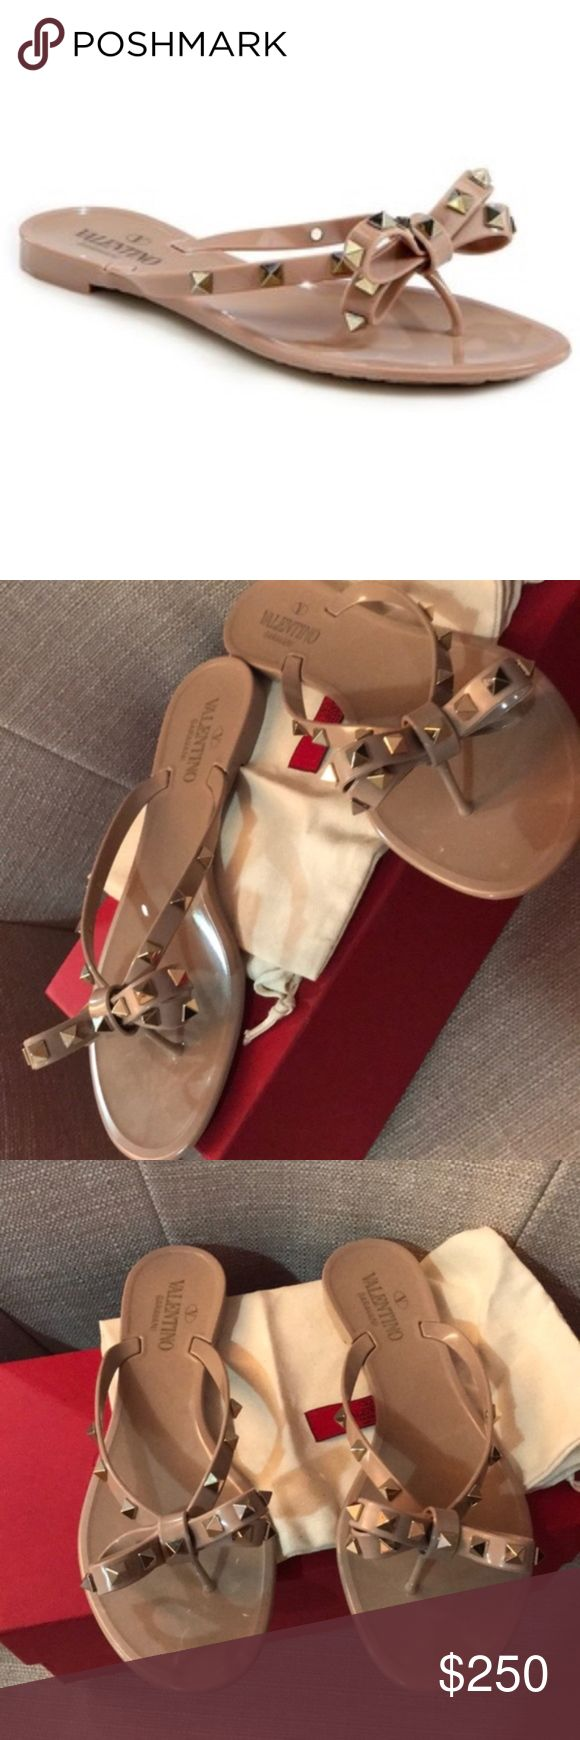 Valentino Rock stud Flip Flops Size 9 Authentic Relisting as I canceled the prior sale. Please do not purchase from my closet if you are unsure of authenticity. I don't have an issue with proving that ALL of my items are AUTHENTIC, but I would like a stress free transaction. size 40 but runs small. NO signs of wear. comes with box, extra studs, and dust bag. proof of authenticity of the shoes shown via online since they were purchased online. Any questions, please feel free to ask! Valentino…